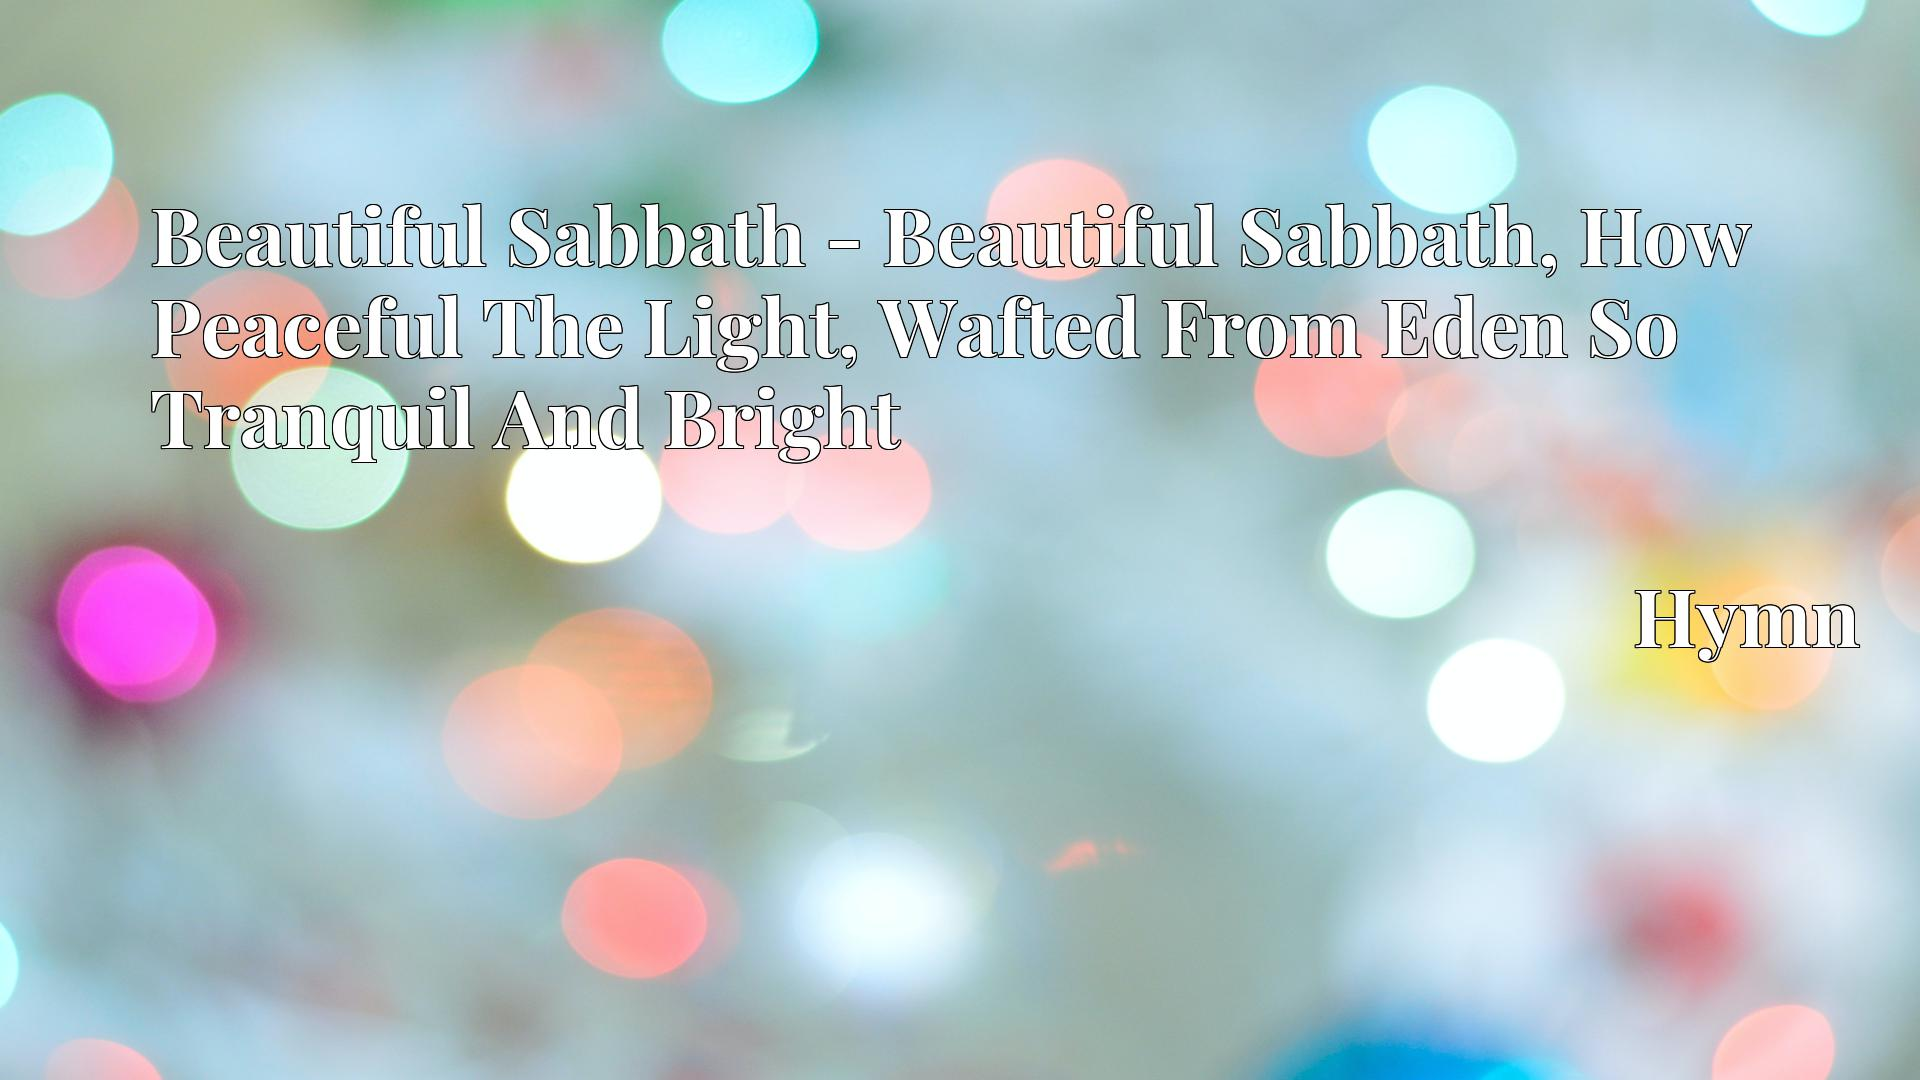 Beautiful Sabbath - Beautiful Sabbath, How Peaceful The Light, Wafted From Eden So Tranquil And Bright Hymn